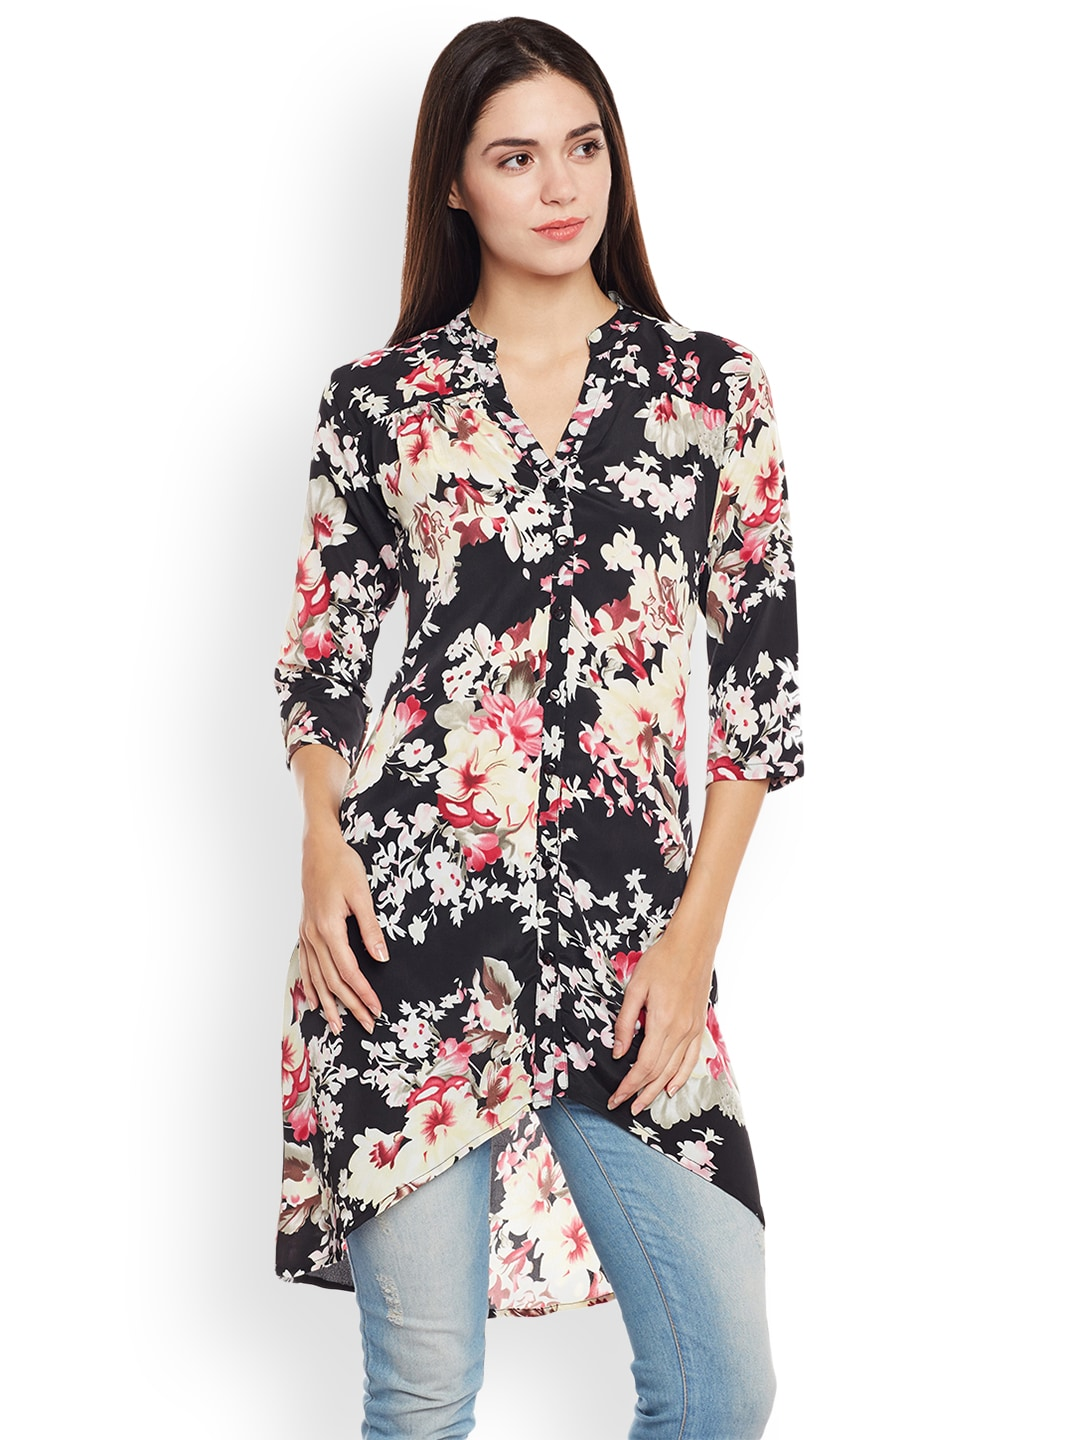 d6b5cd13f55 Tunics for Women - Buy Tunic Tops For Women Online in India